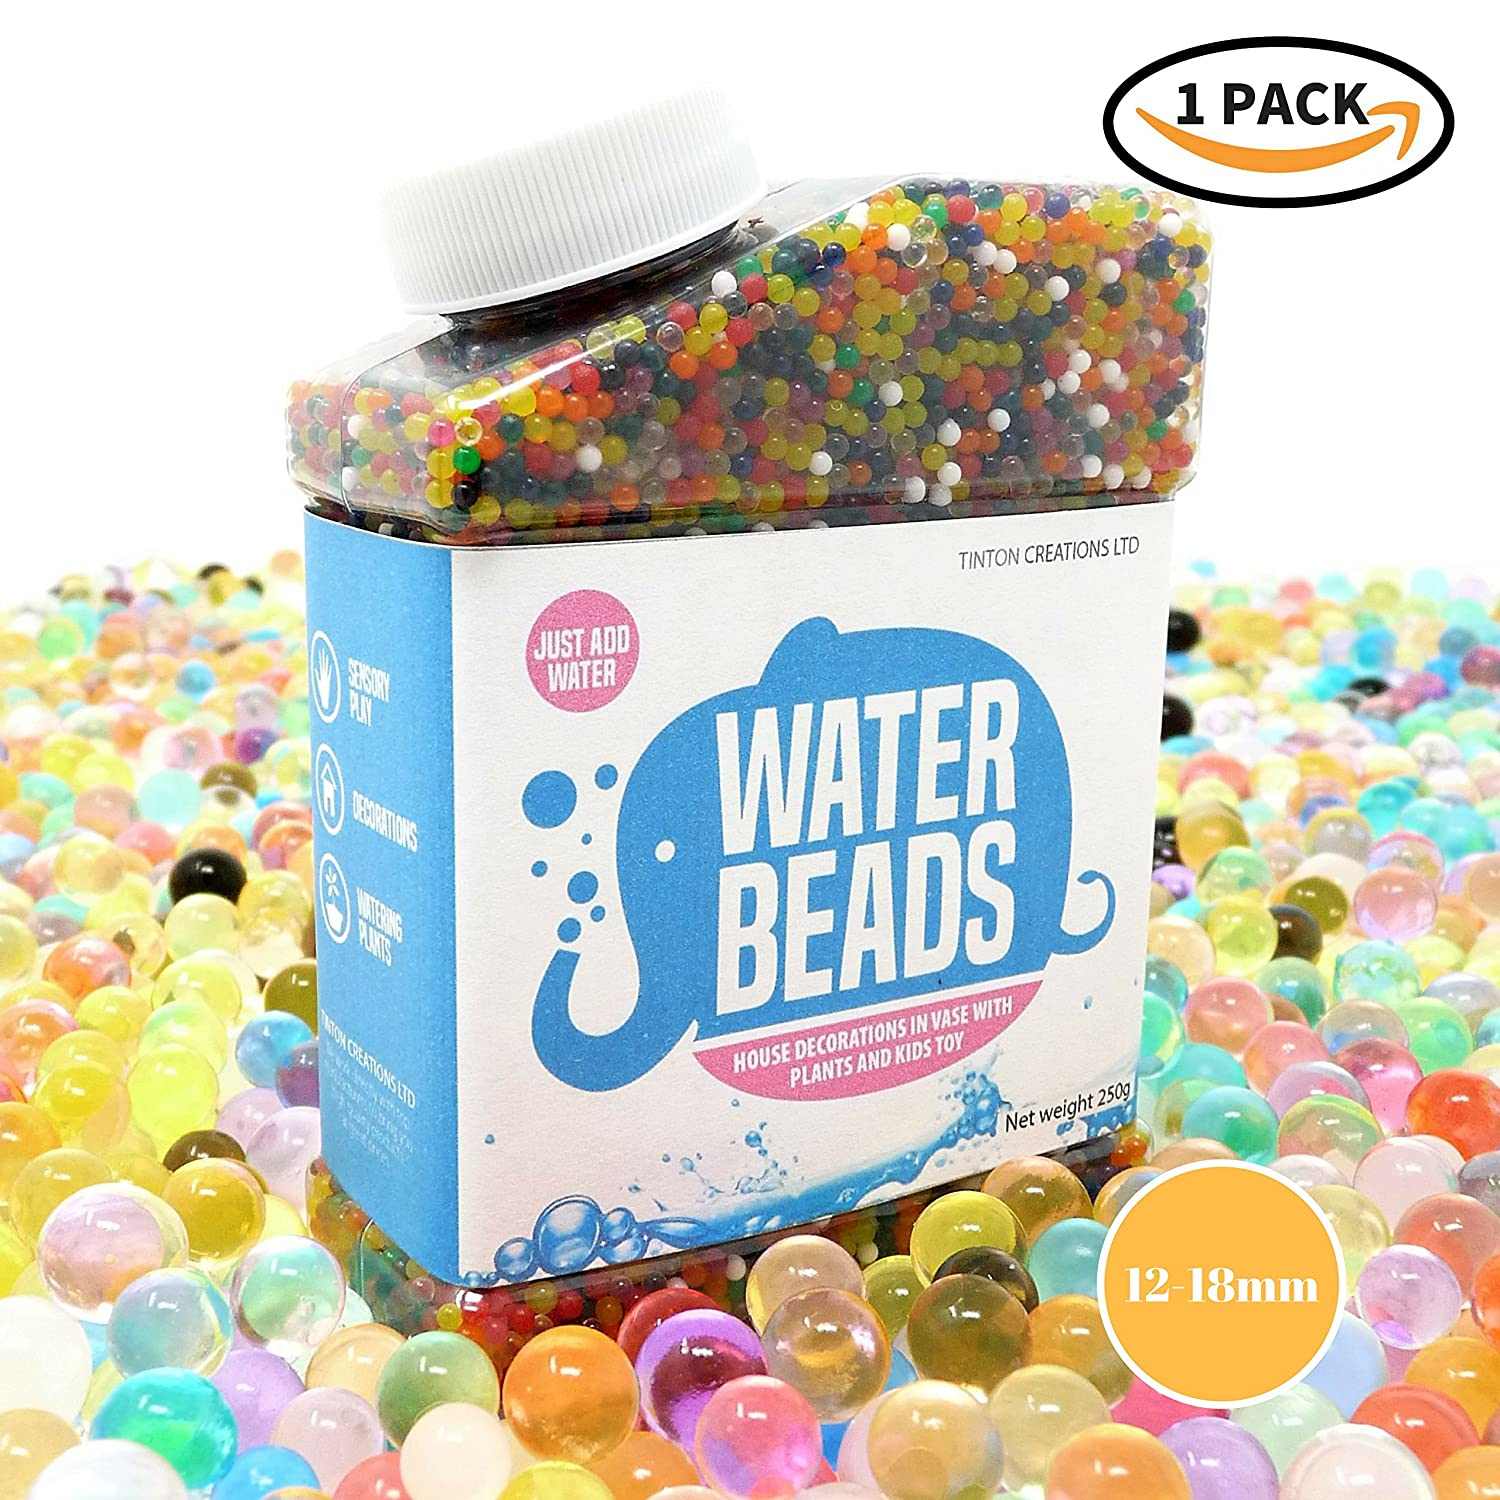 1 X Pack ~ Water Beads Rainbow Mix ~ Vibrant Colours ~ 9oz (40,000 beads) for Orbeez Spa Refill, Sensory Toy, Kids Bath Toy, Vases, Plants, Wedding and Home Decoration ~ 12-18mm Diameter Tinton Creations Ltd